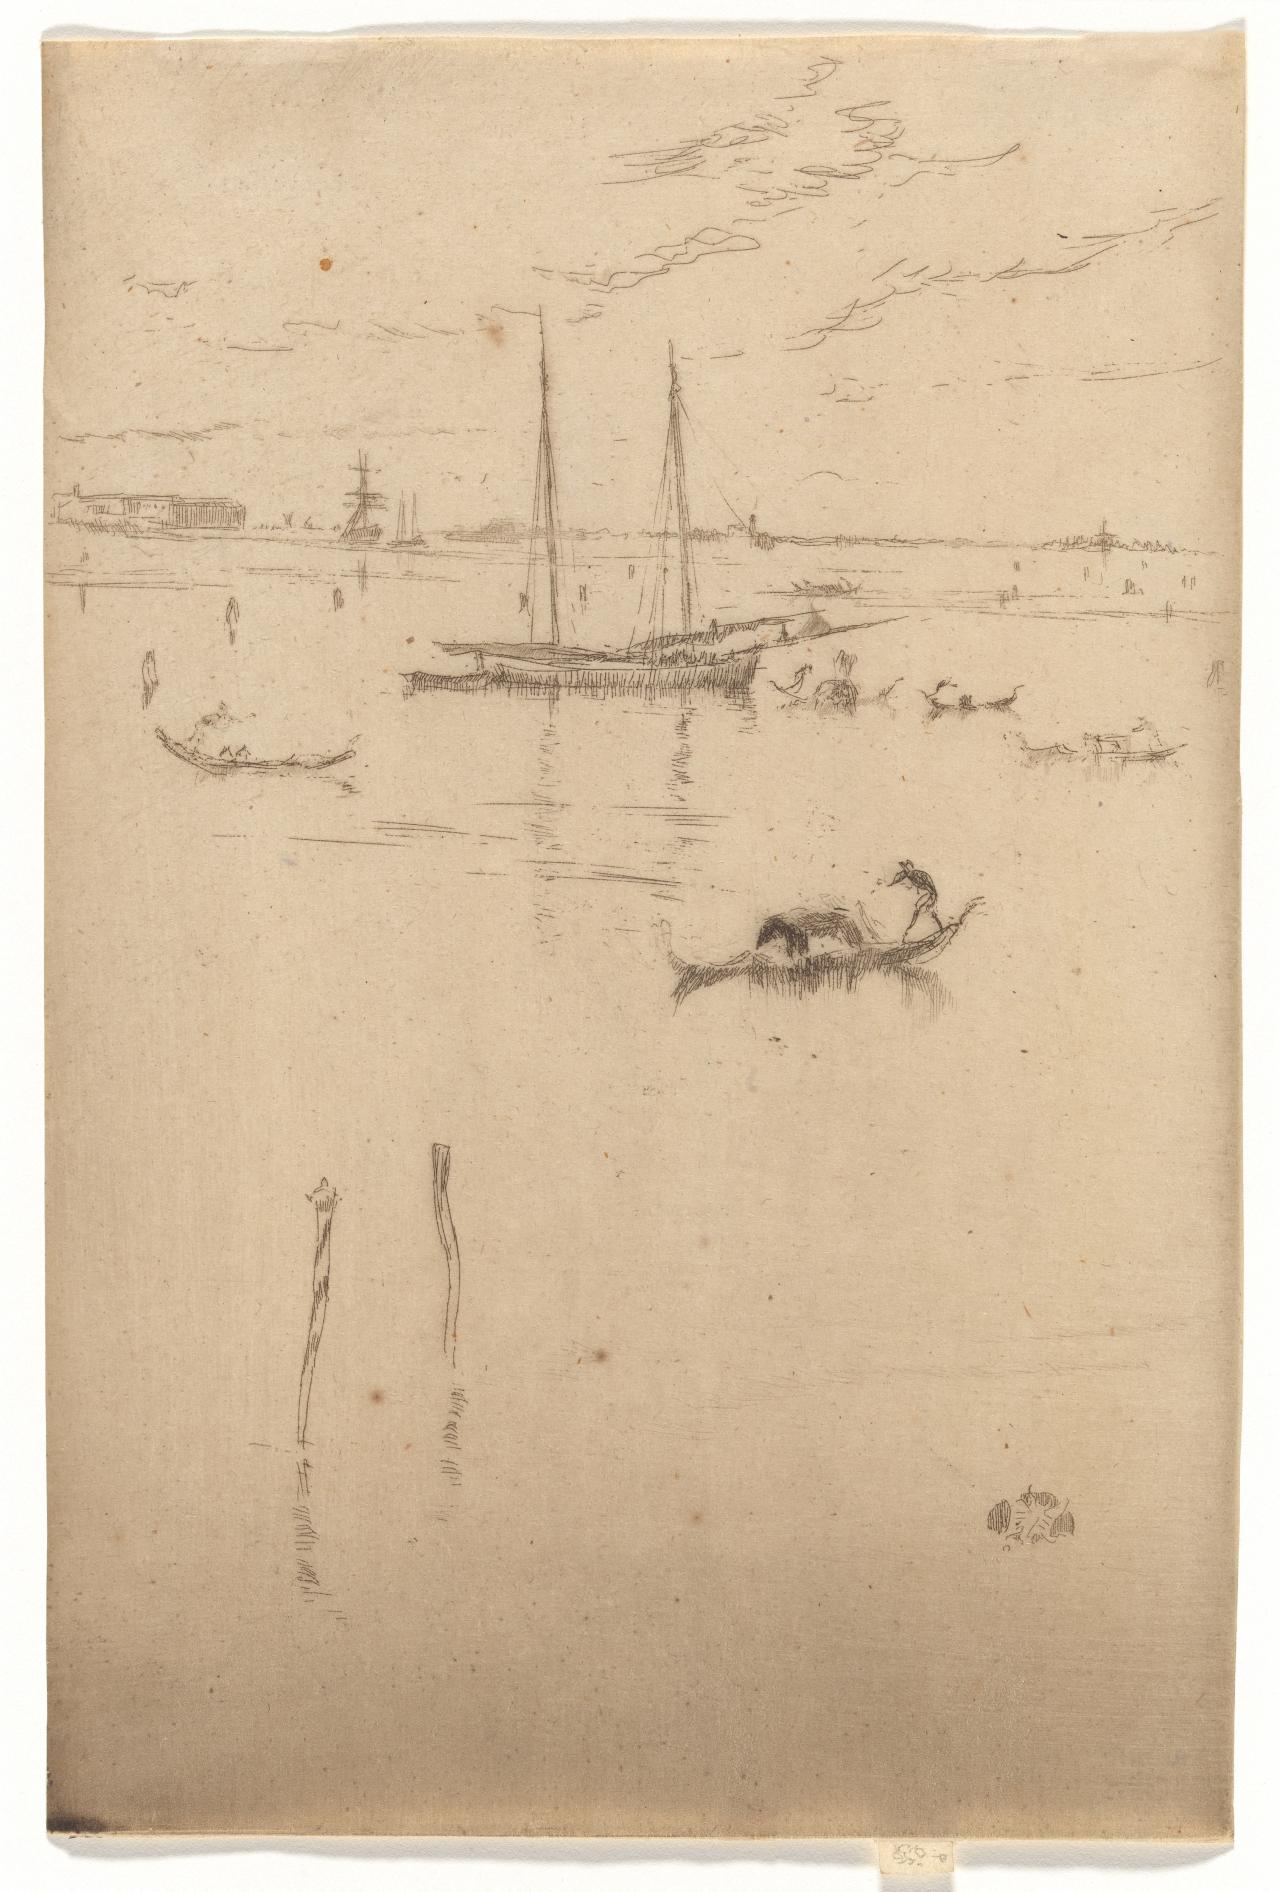 James McNeill Whistler American 1834–1903, worked in France 1855–59, England 1859–92, France 1892–95, England 1895–1903